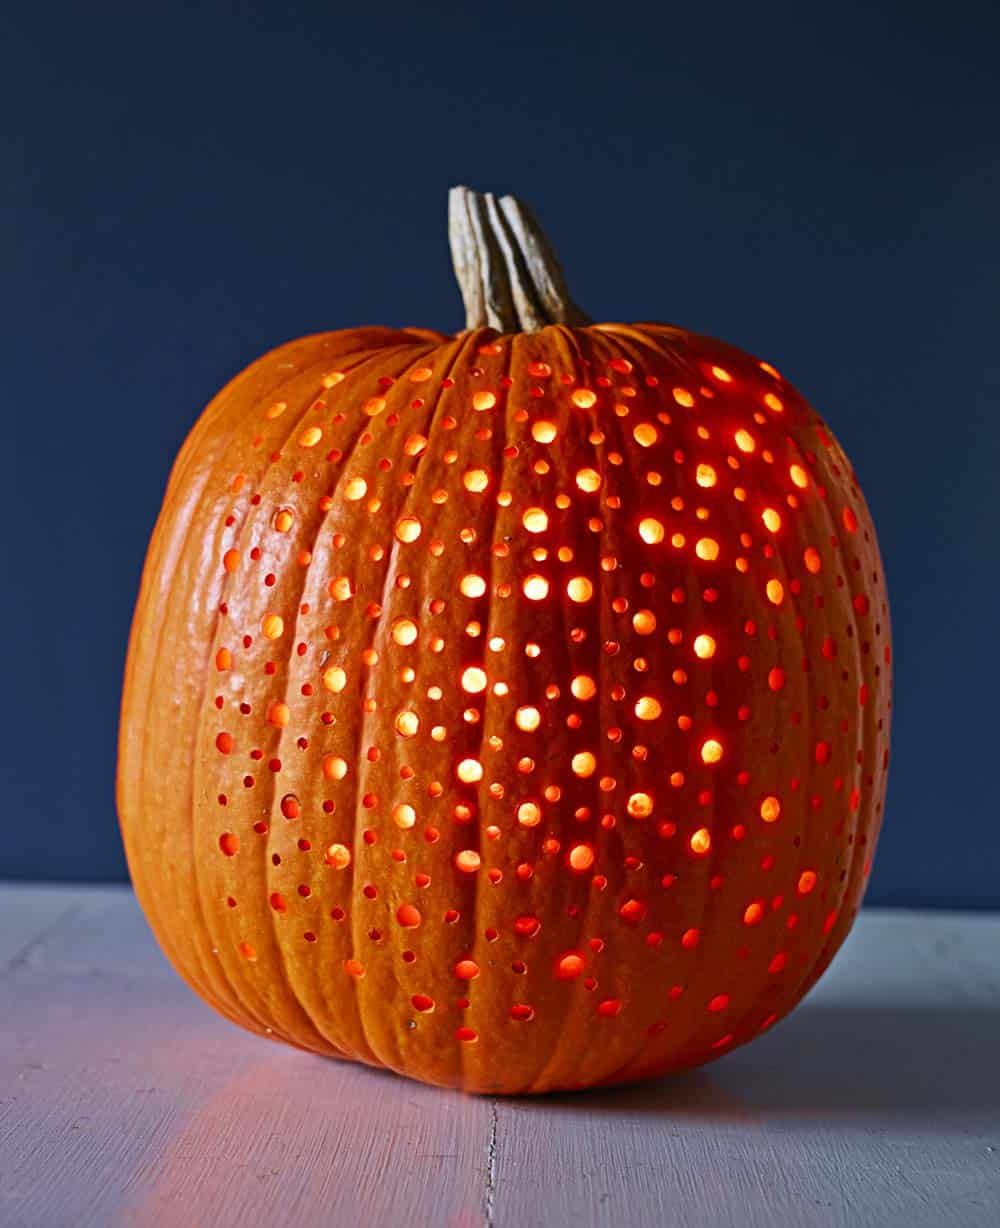 Creative Halloween Pumpkin Carving Ideas-10-1 Kindesign